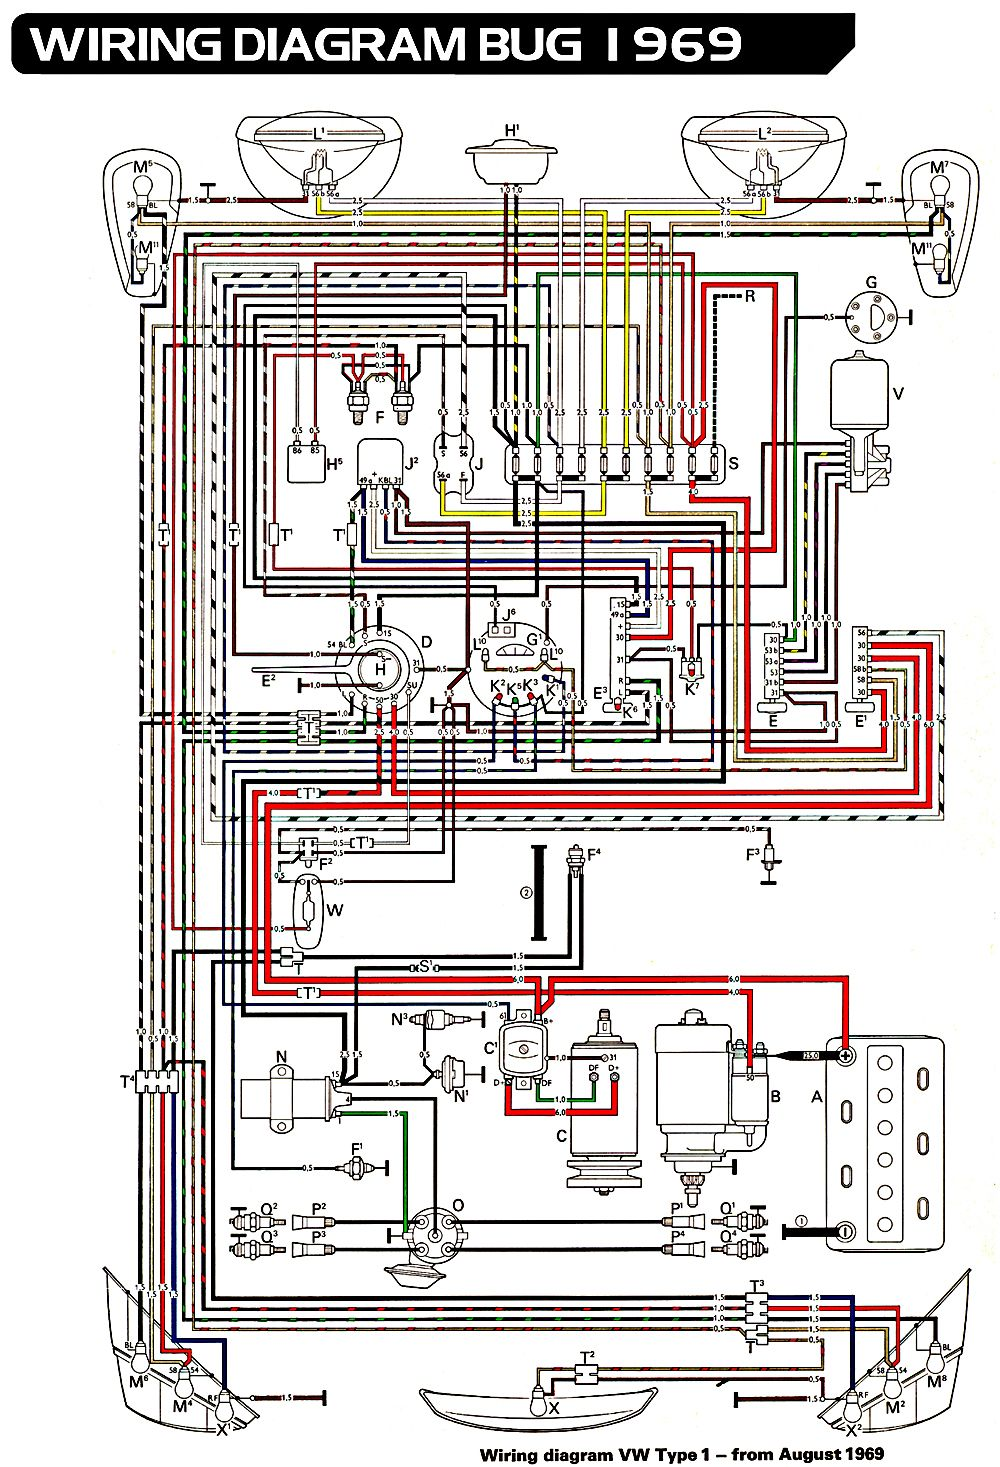 6d75c15875479254f26a32a8499d9044 volkswagen beetle wiring diagram 1966 vw beetle wiring 1973 super beetle fuse box diagram at mr168.co